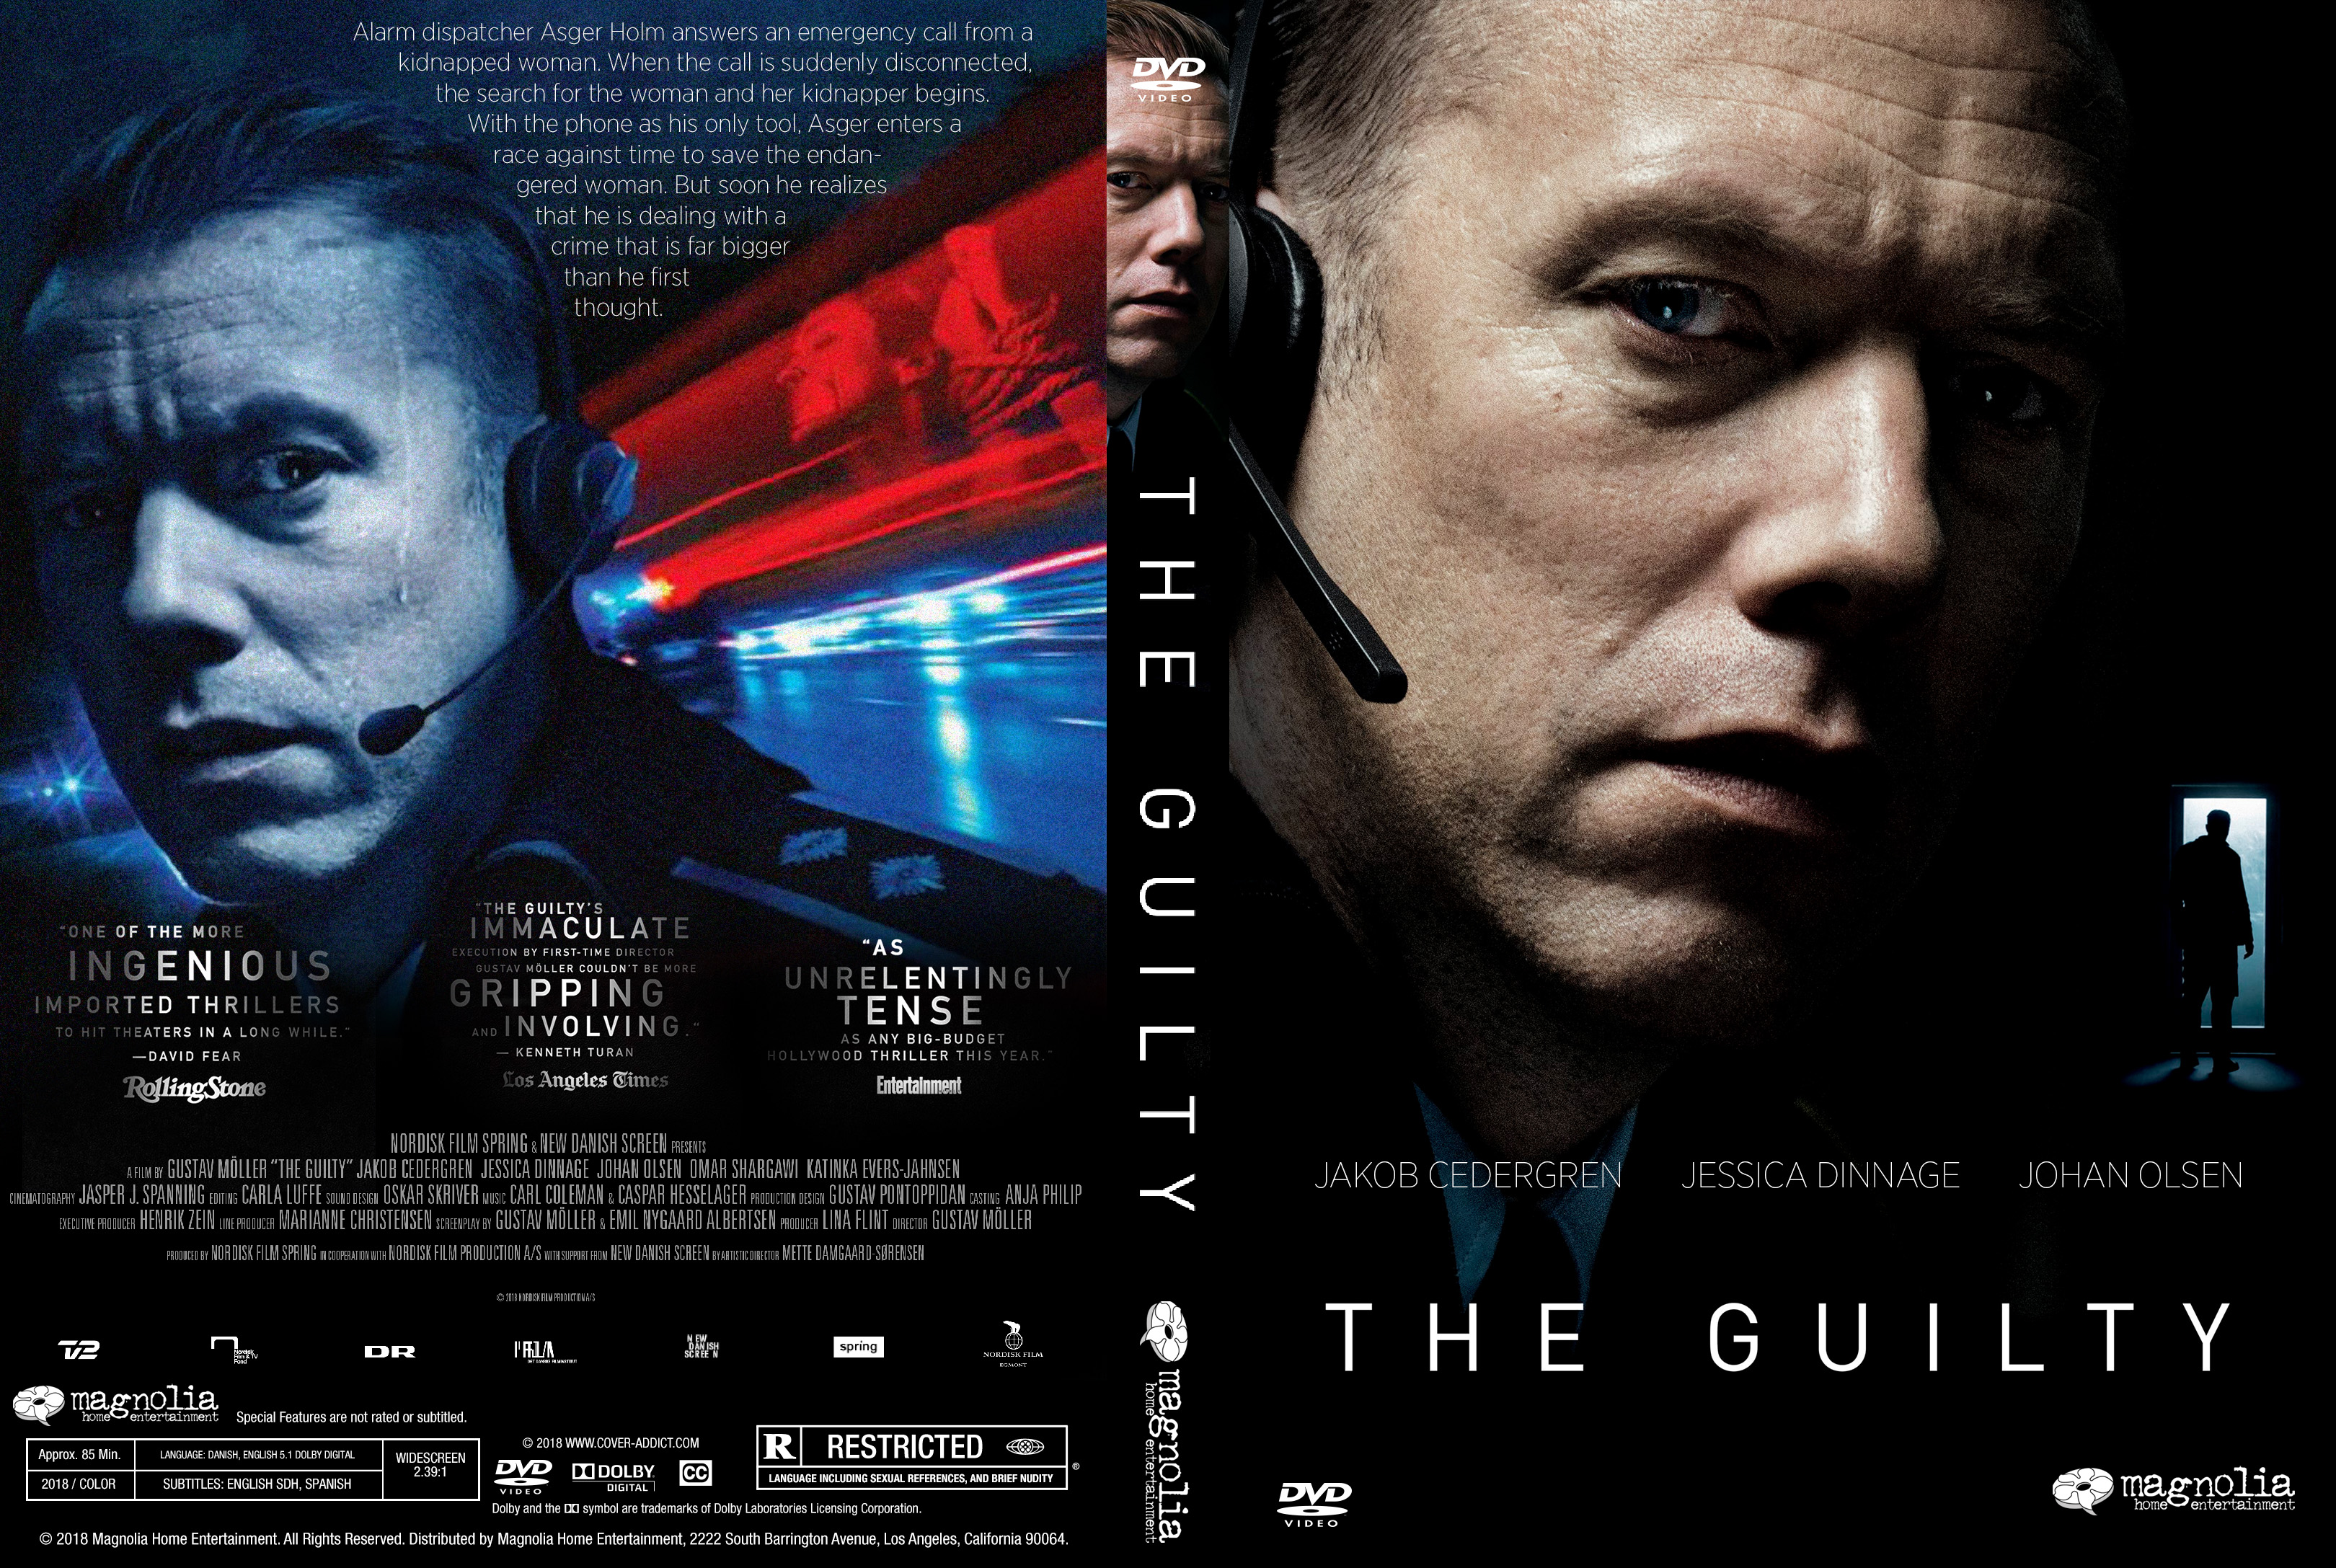 The Guilty Dvd Cover Cover Addict Free Dvd Bluray Covers And Movie Posters